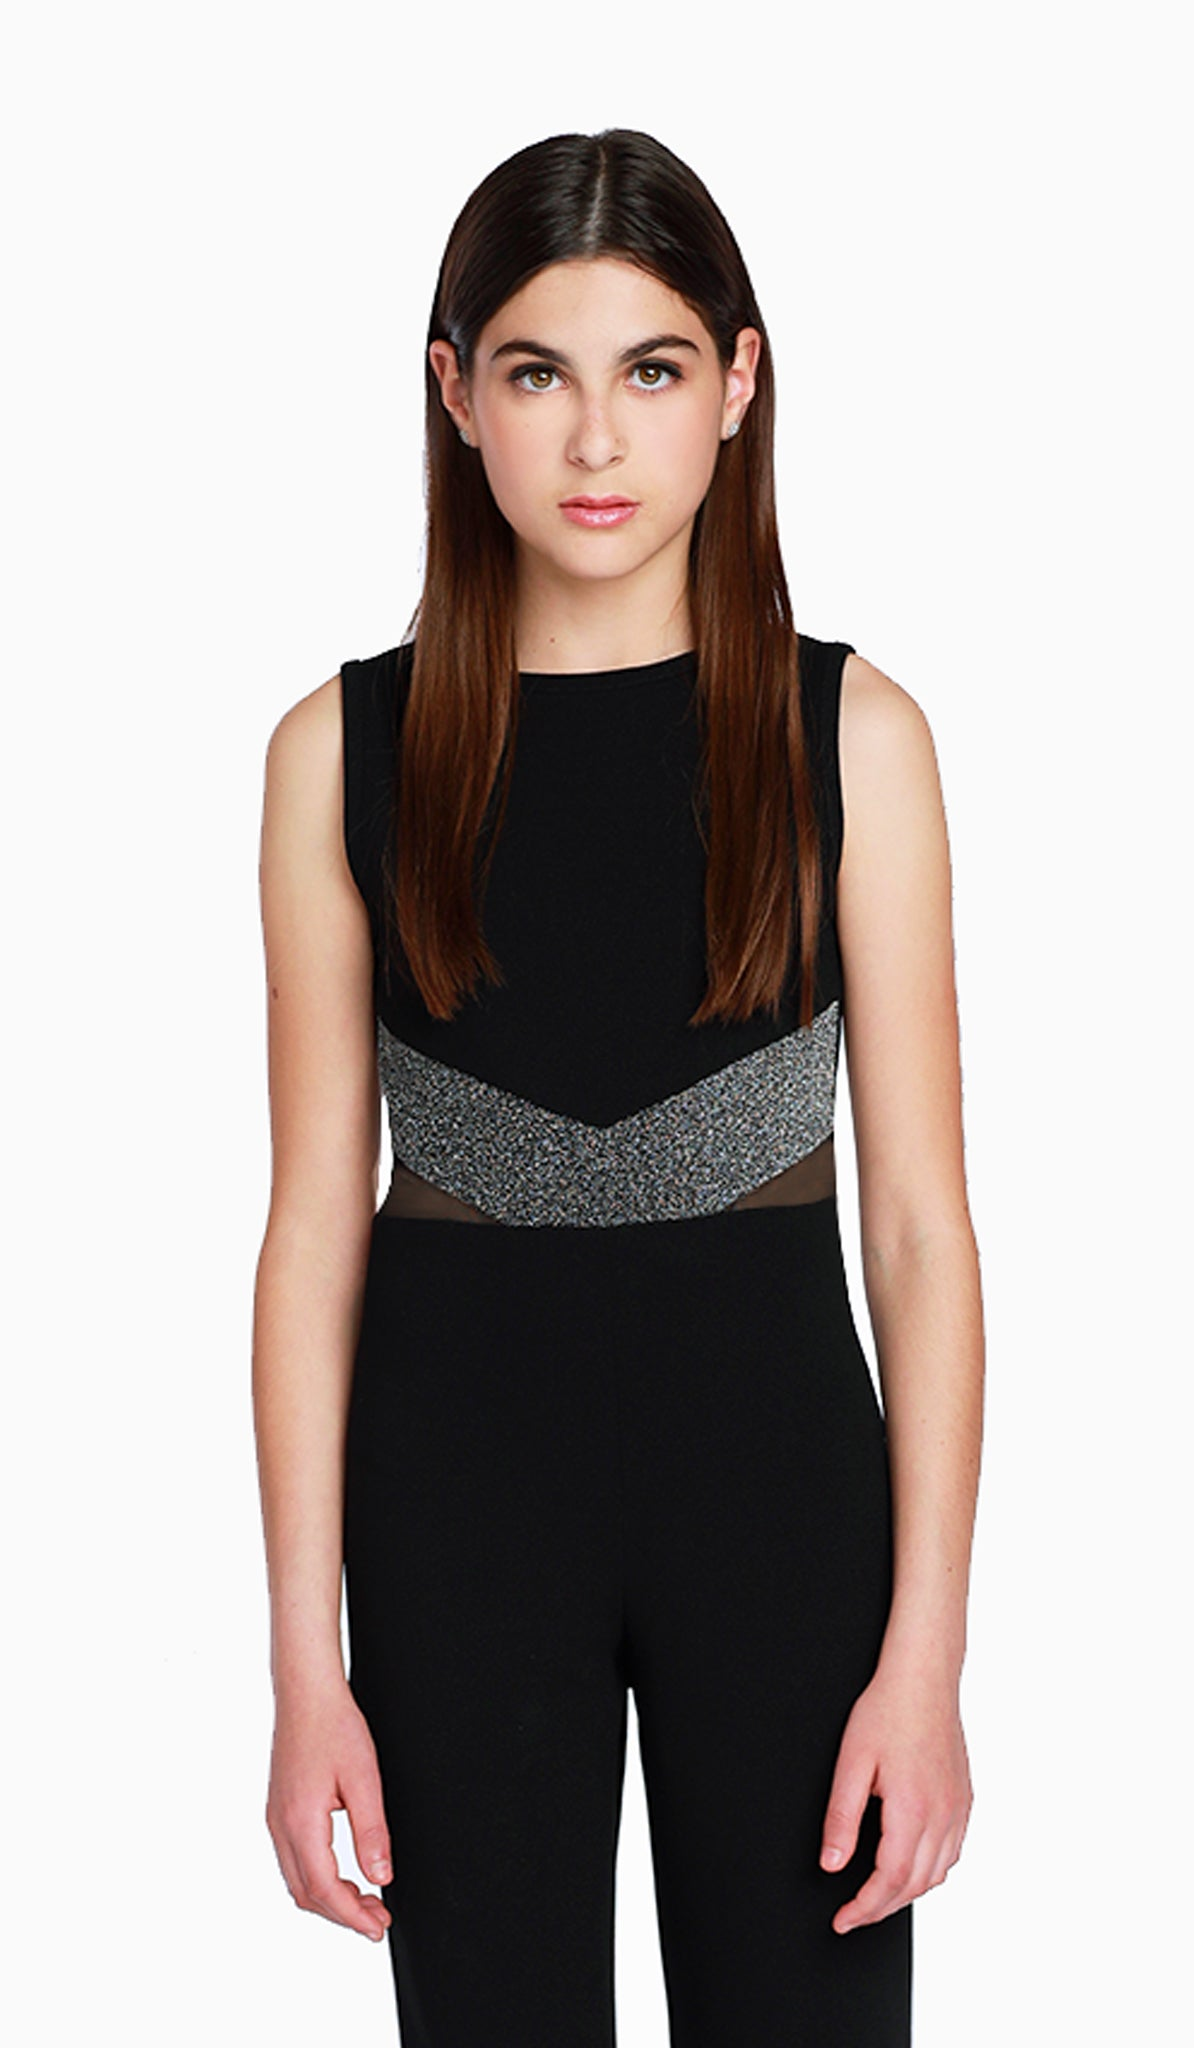 THE ALLIE JUMPSUIT - Sallymiller.com - [variant title] - | Event & Party Dresses for Tween Girls & Juniors | Weddings Dresses, Bat Mitzvah Dresses, Sweet Sixteen Dresses, Graduation Dresses, Birthday Party Dresses, Bar Mitzvah Dresses, Cotillion Dresses